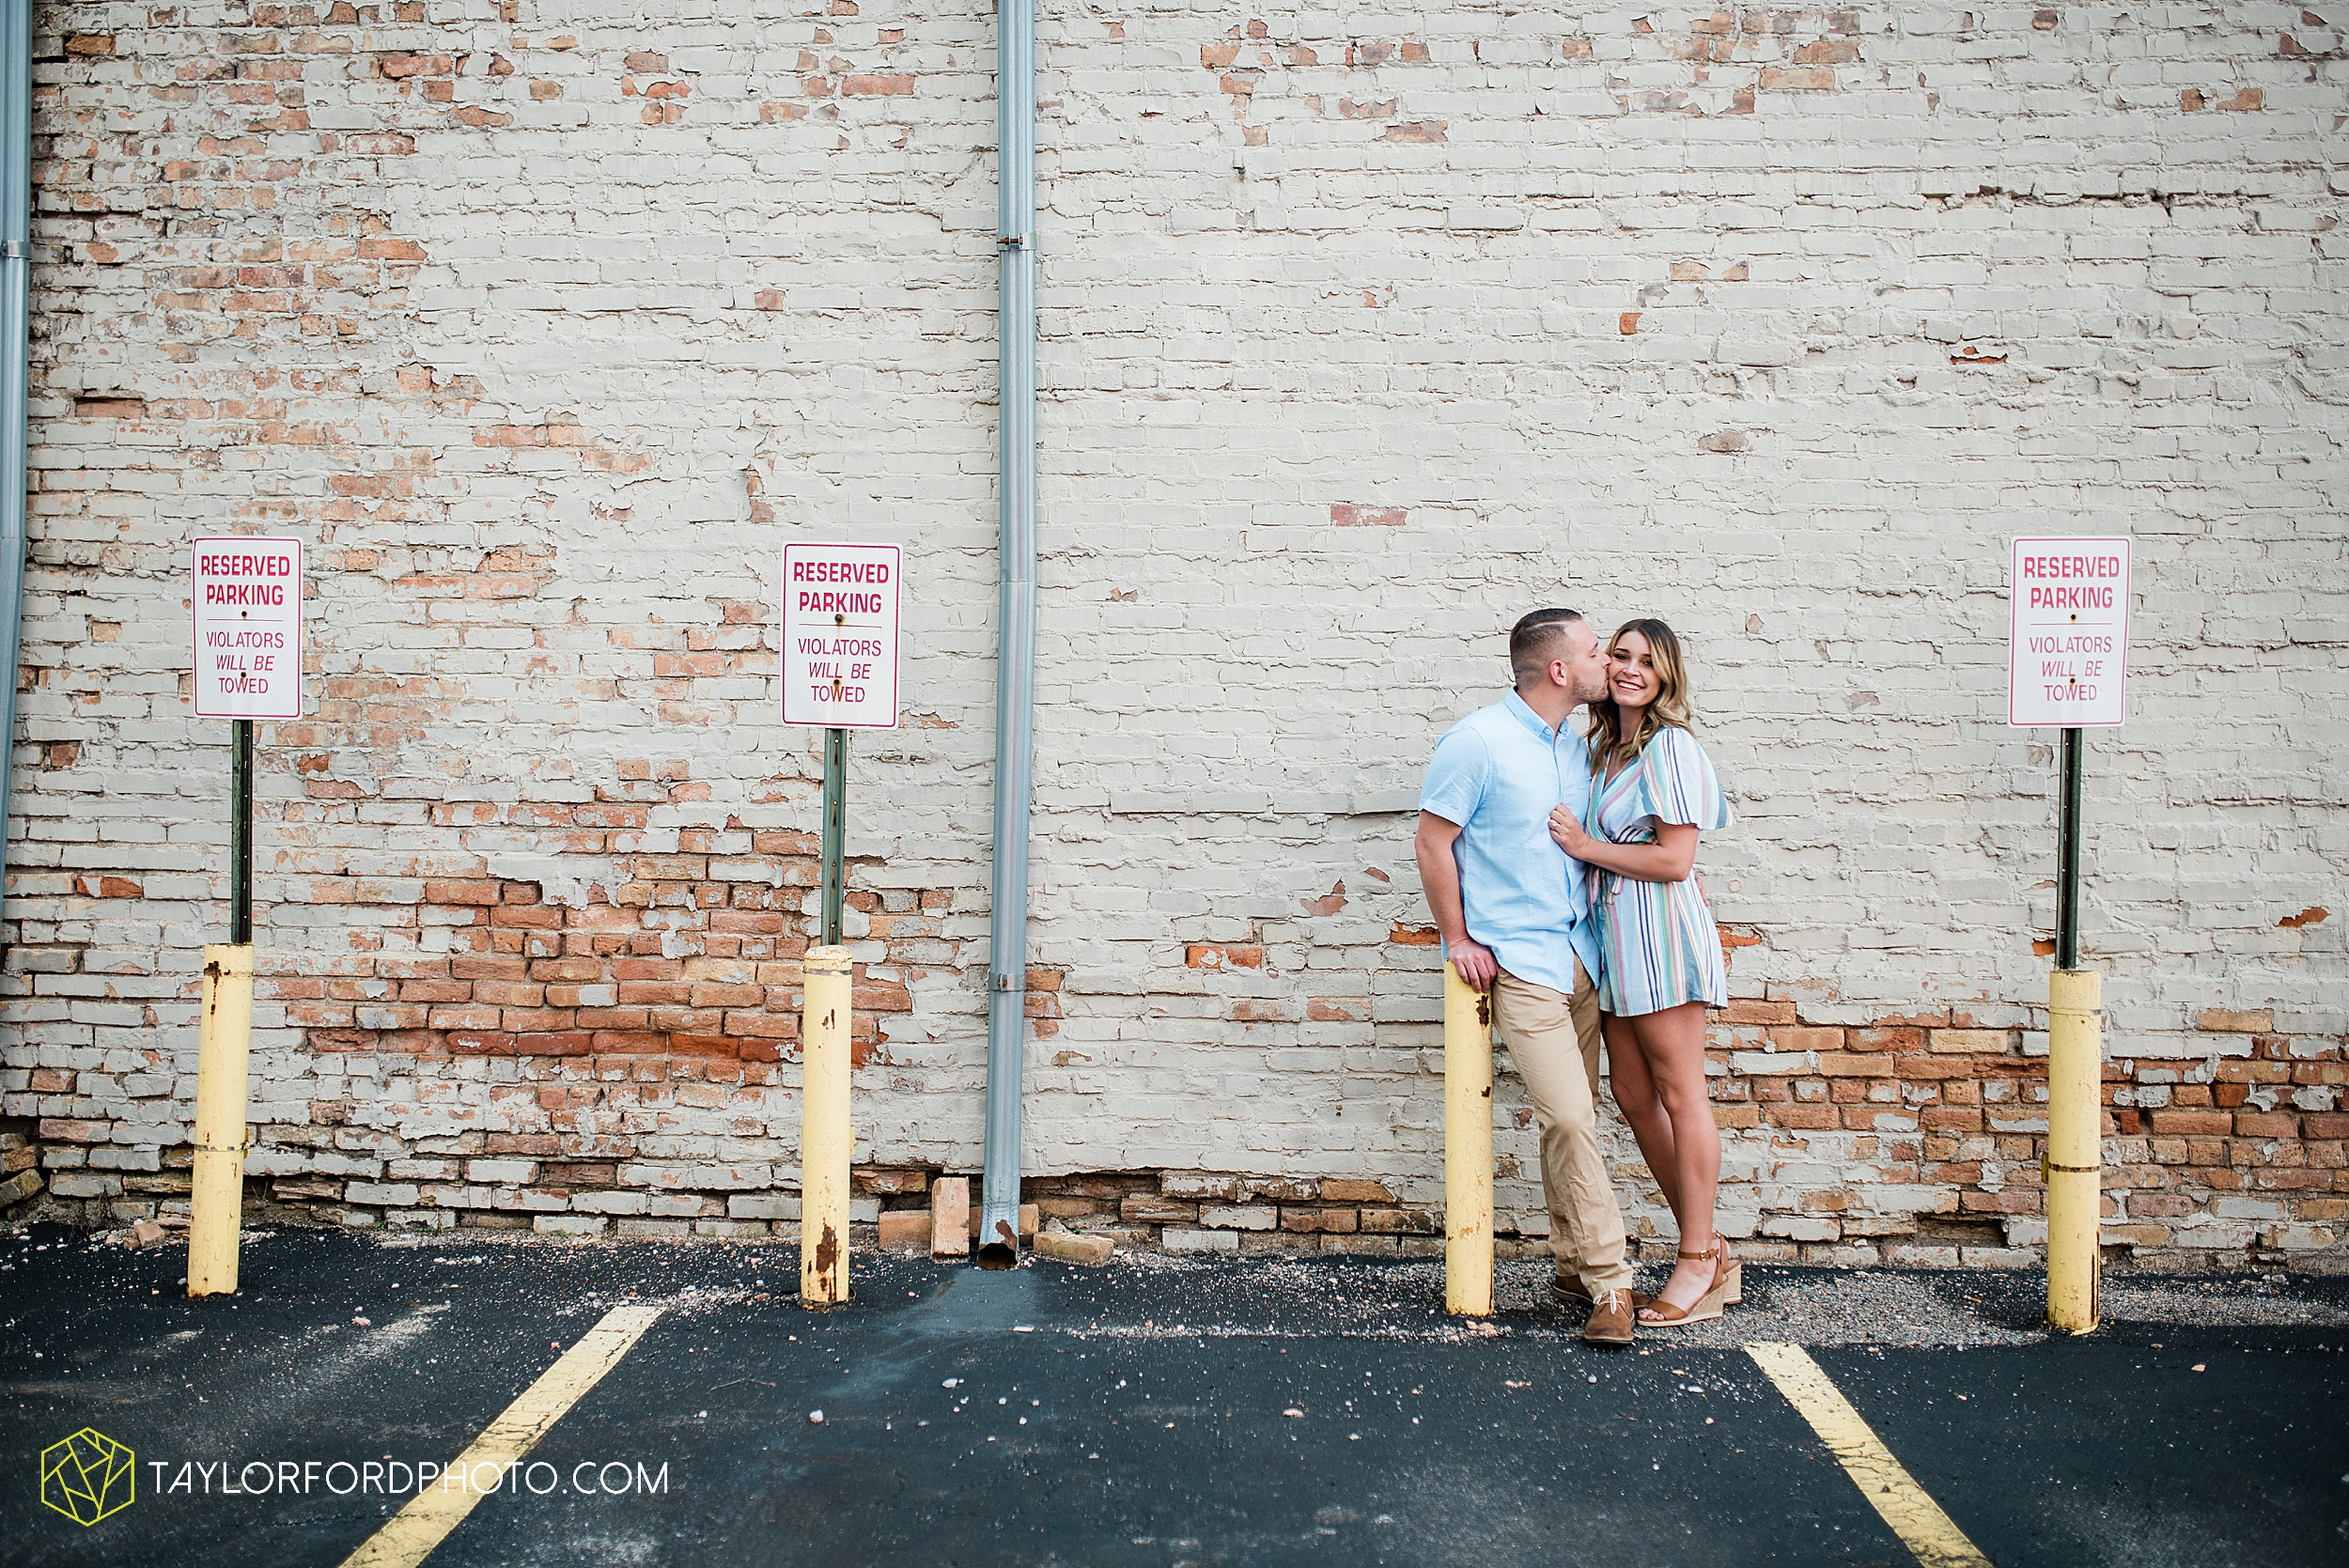 aly-taylor-downtown-fort-wayne-indiana-spring-engagement-photographer-photography-taylor-ford-hirschy-photographer_2578.jpg